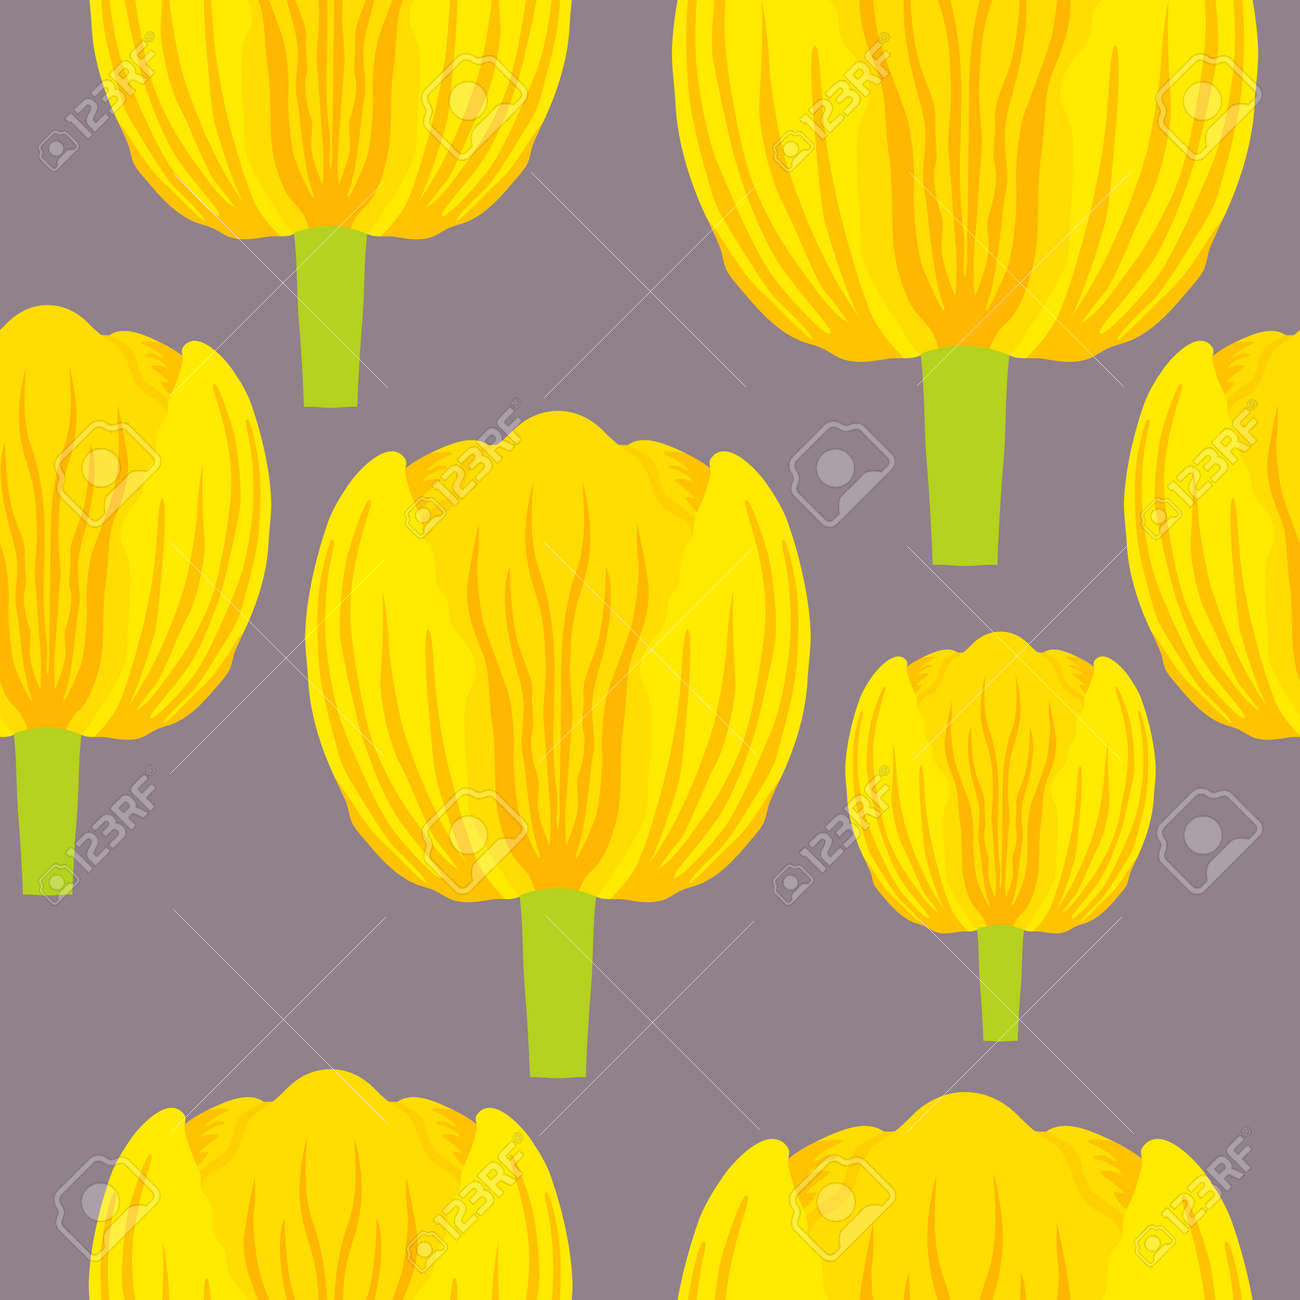 Seamless pattern with a vibrant yellow tulip - 168336282